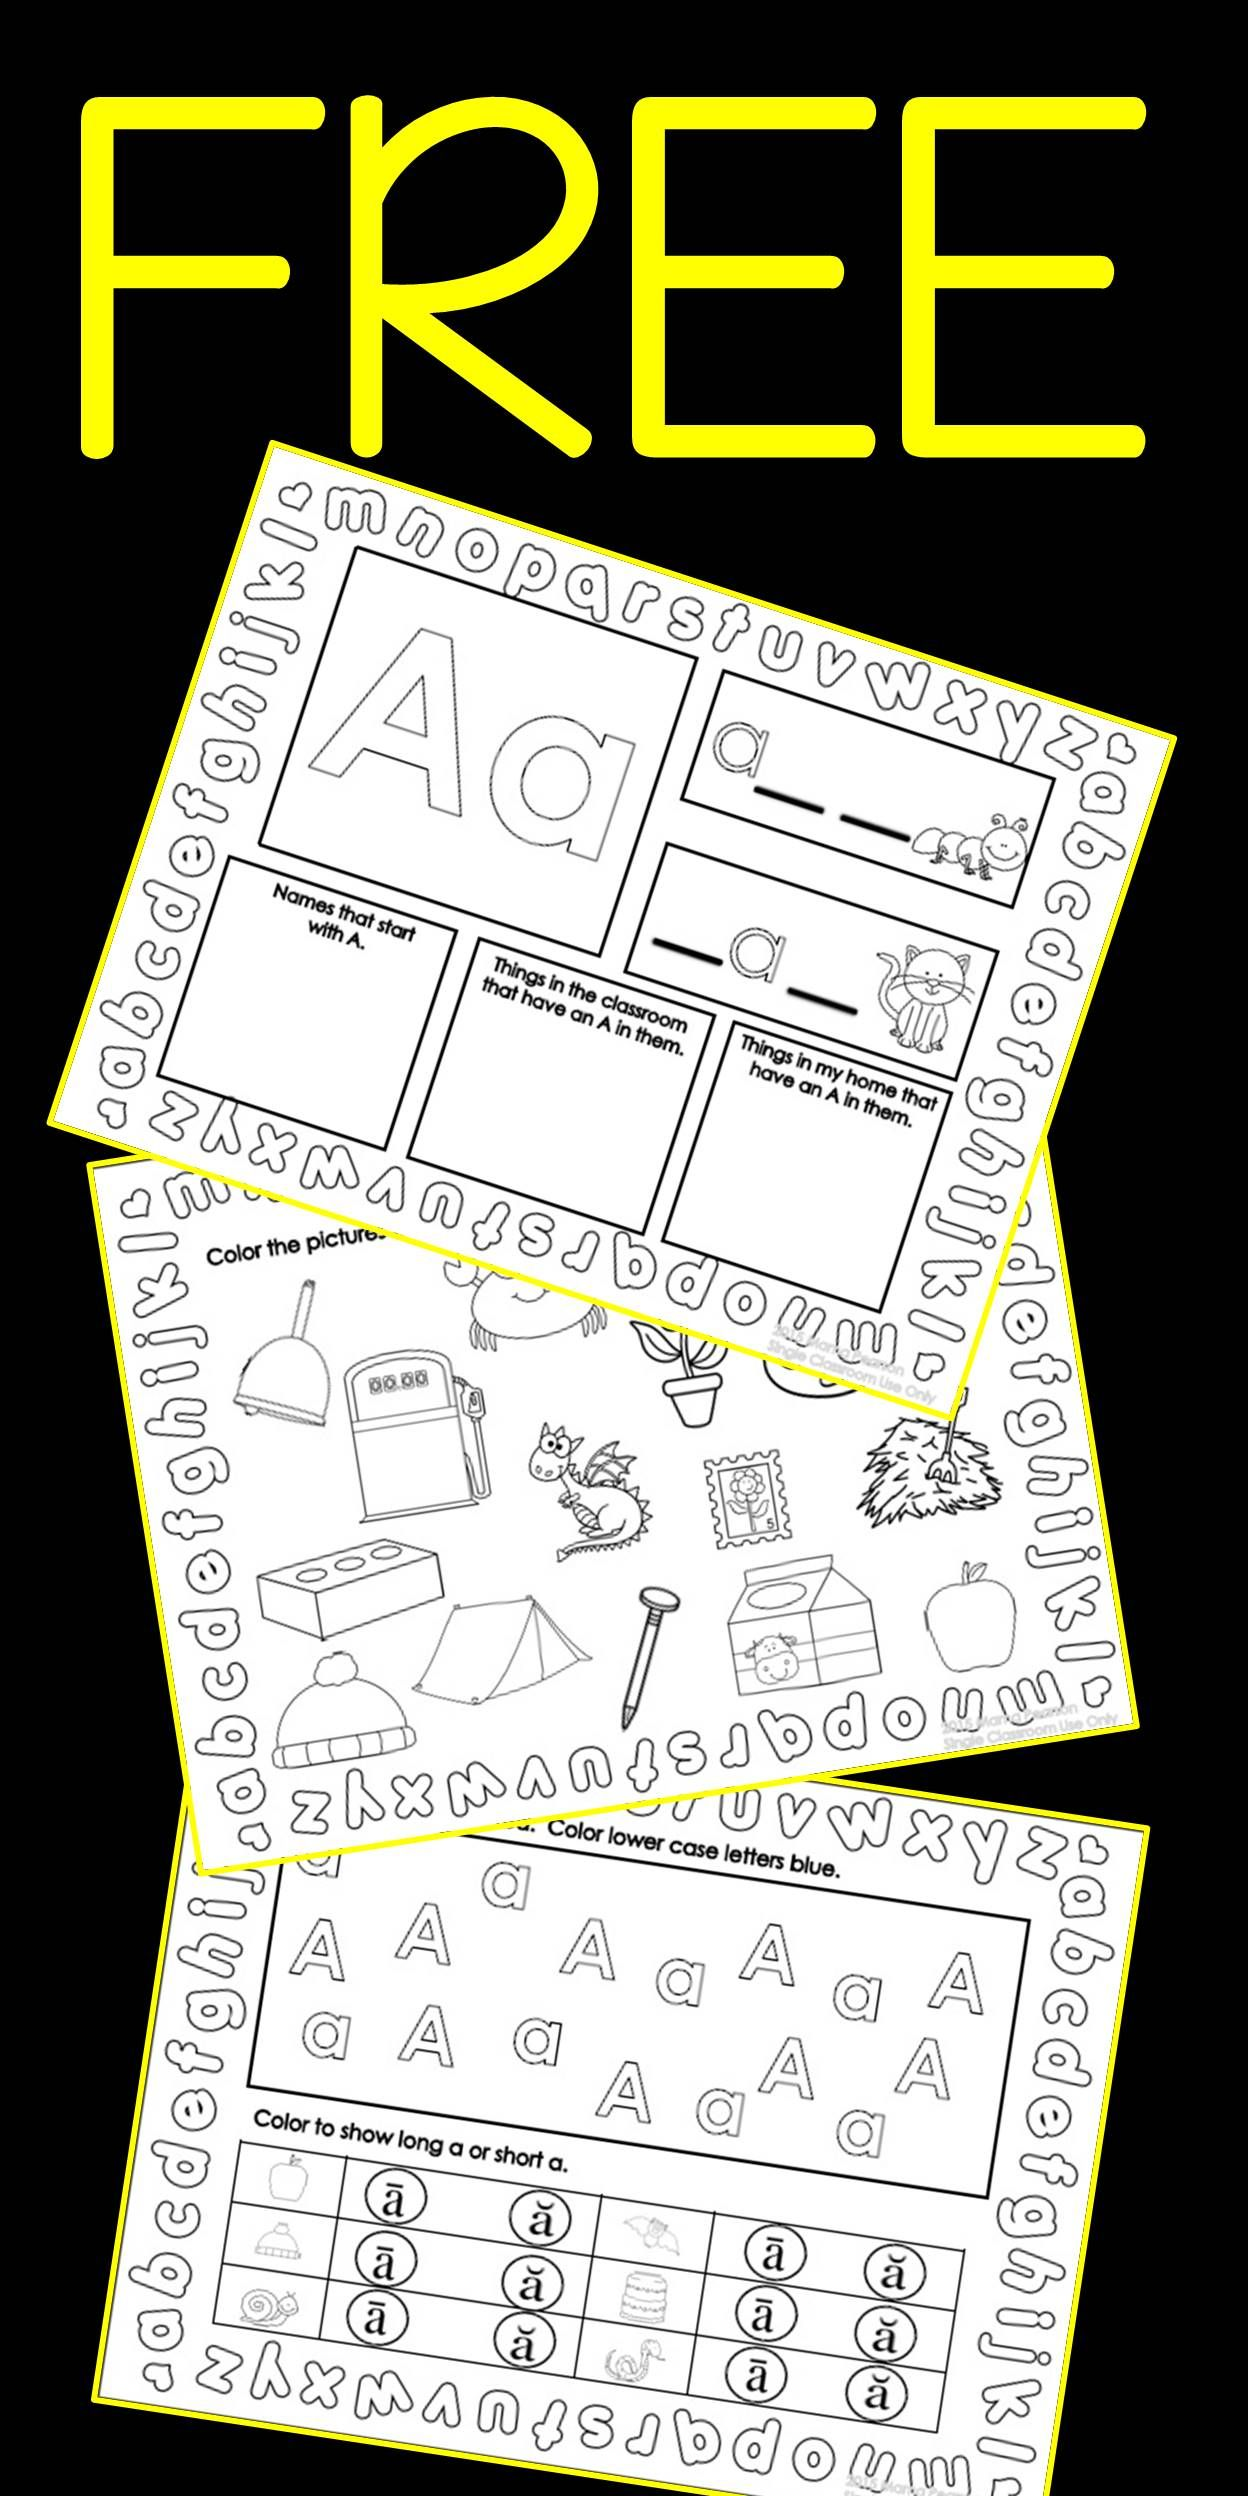 7 Free Pages To Help Your Students Practice Skills With The Letter A Your Students Will Love